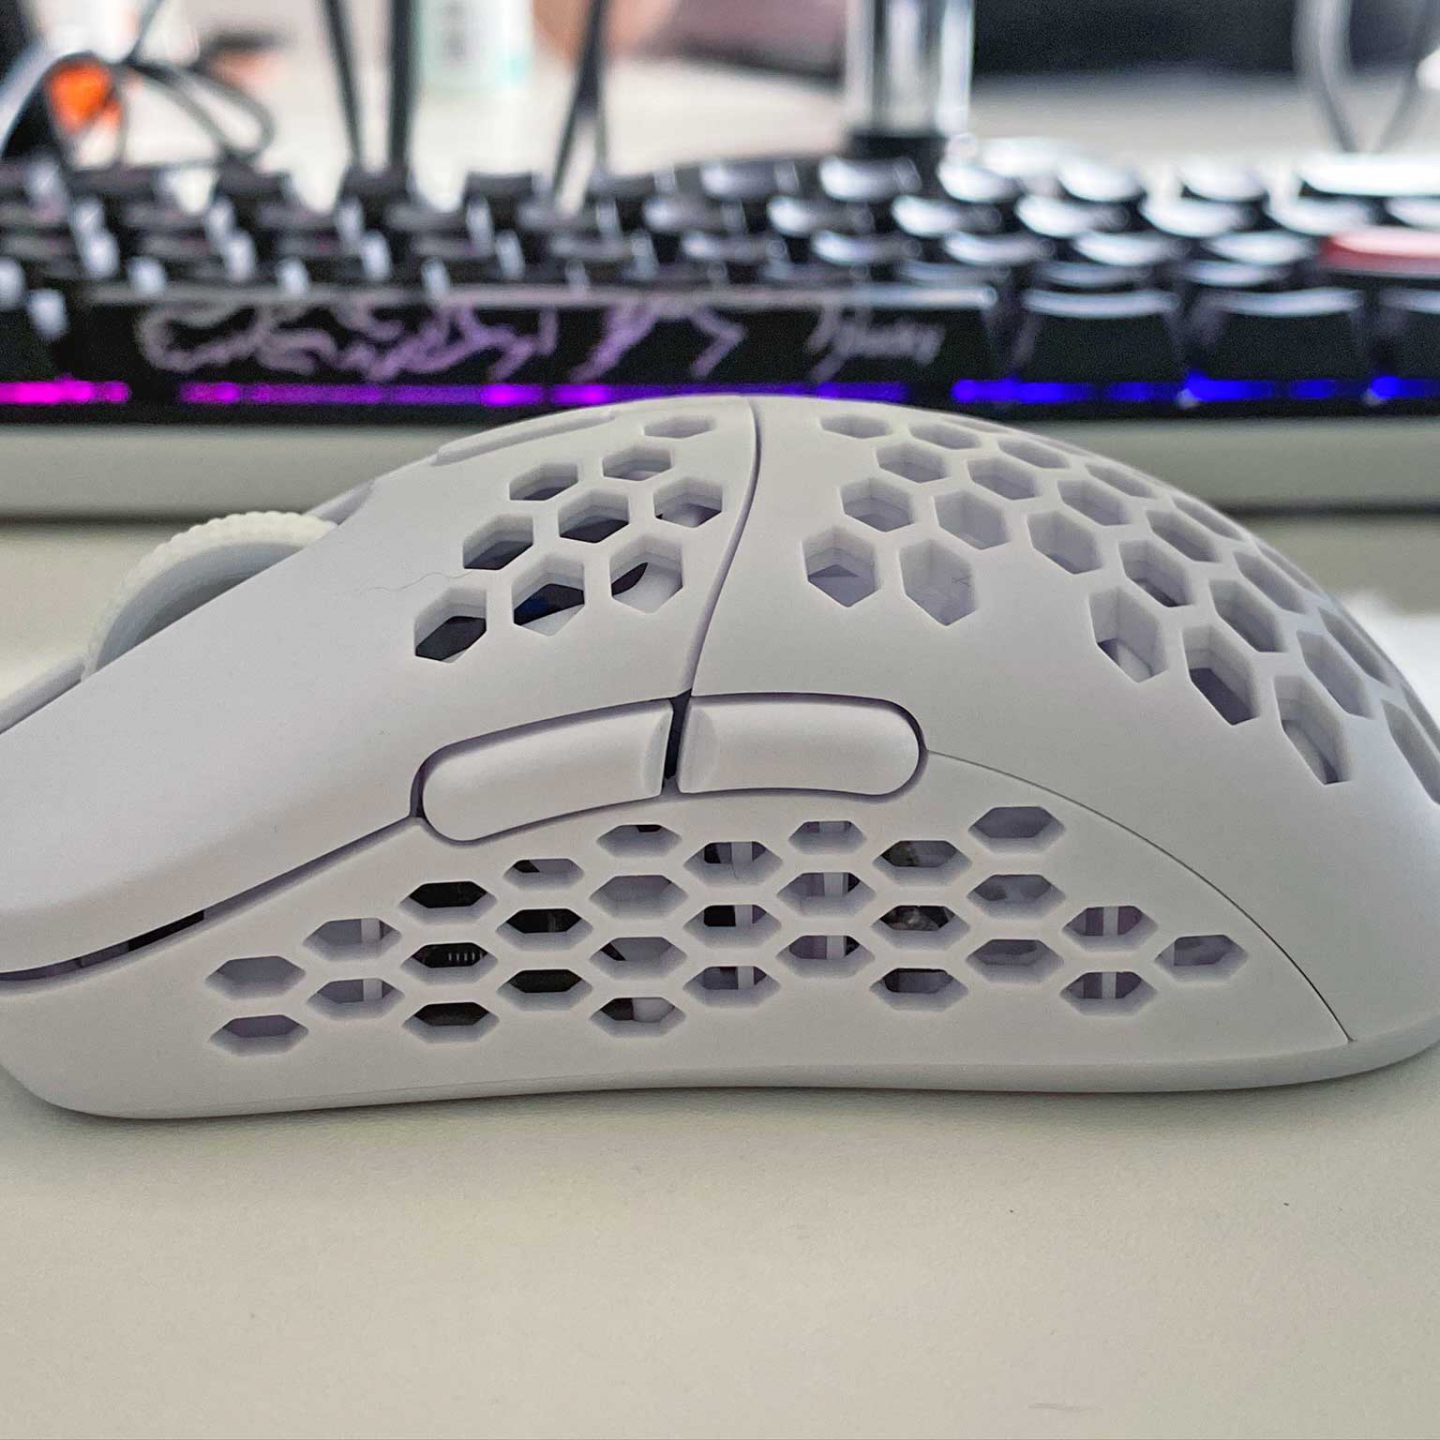 Mira S light weight gaming mouse